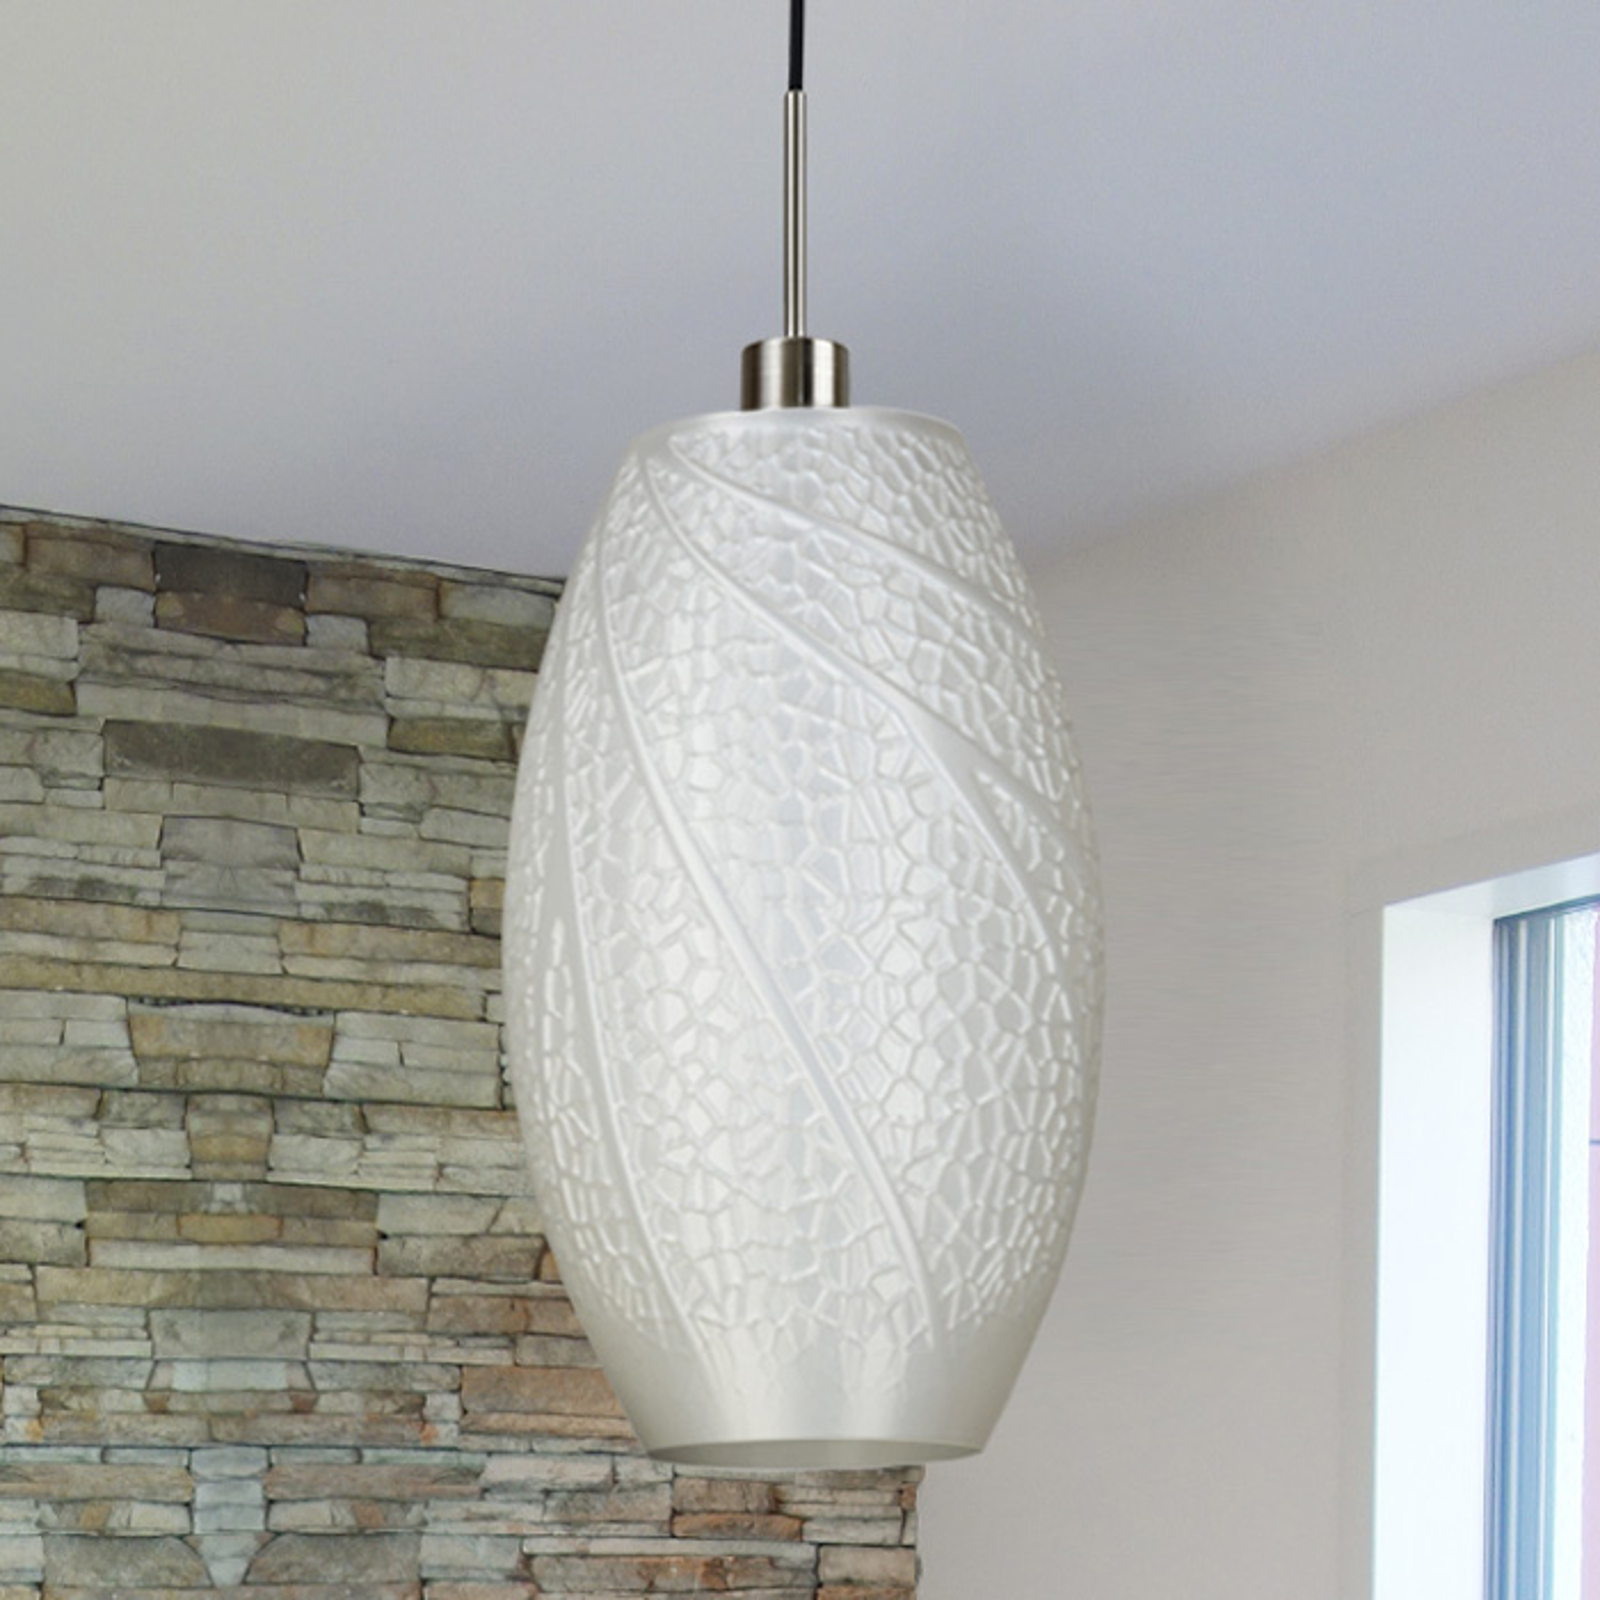 Flora - design-hanglamp van de 3D-printer